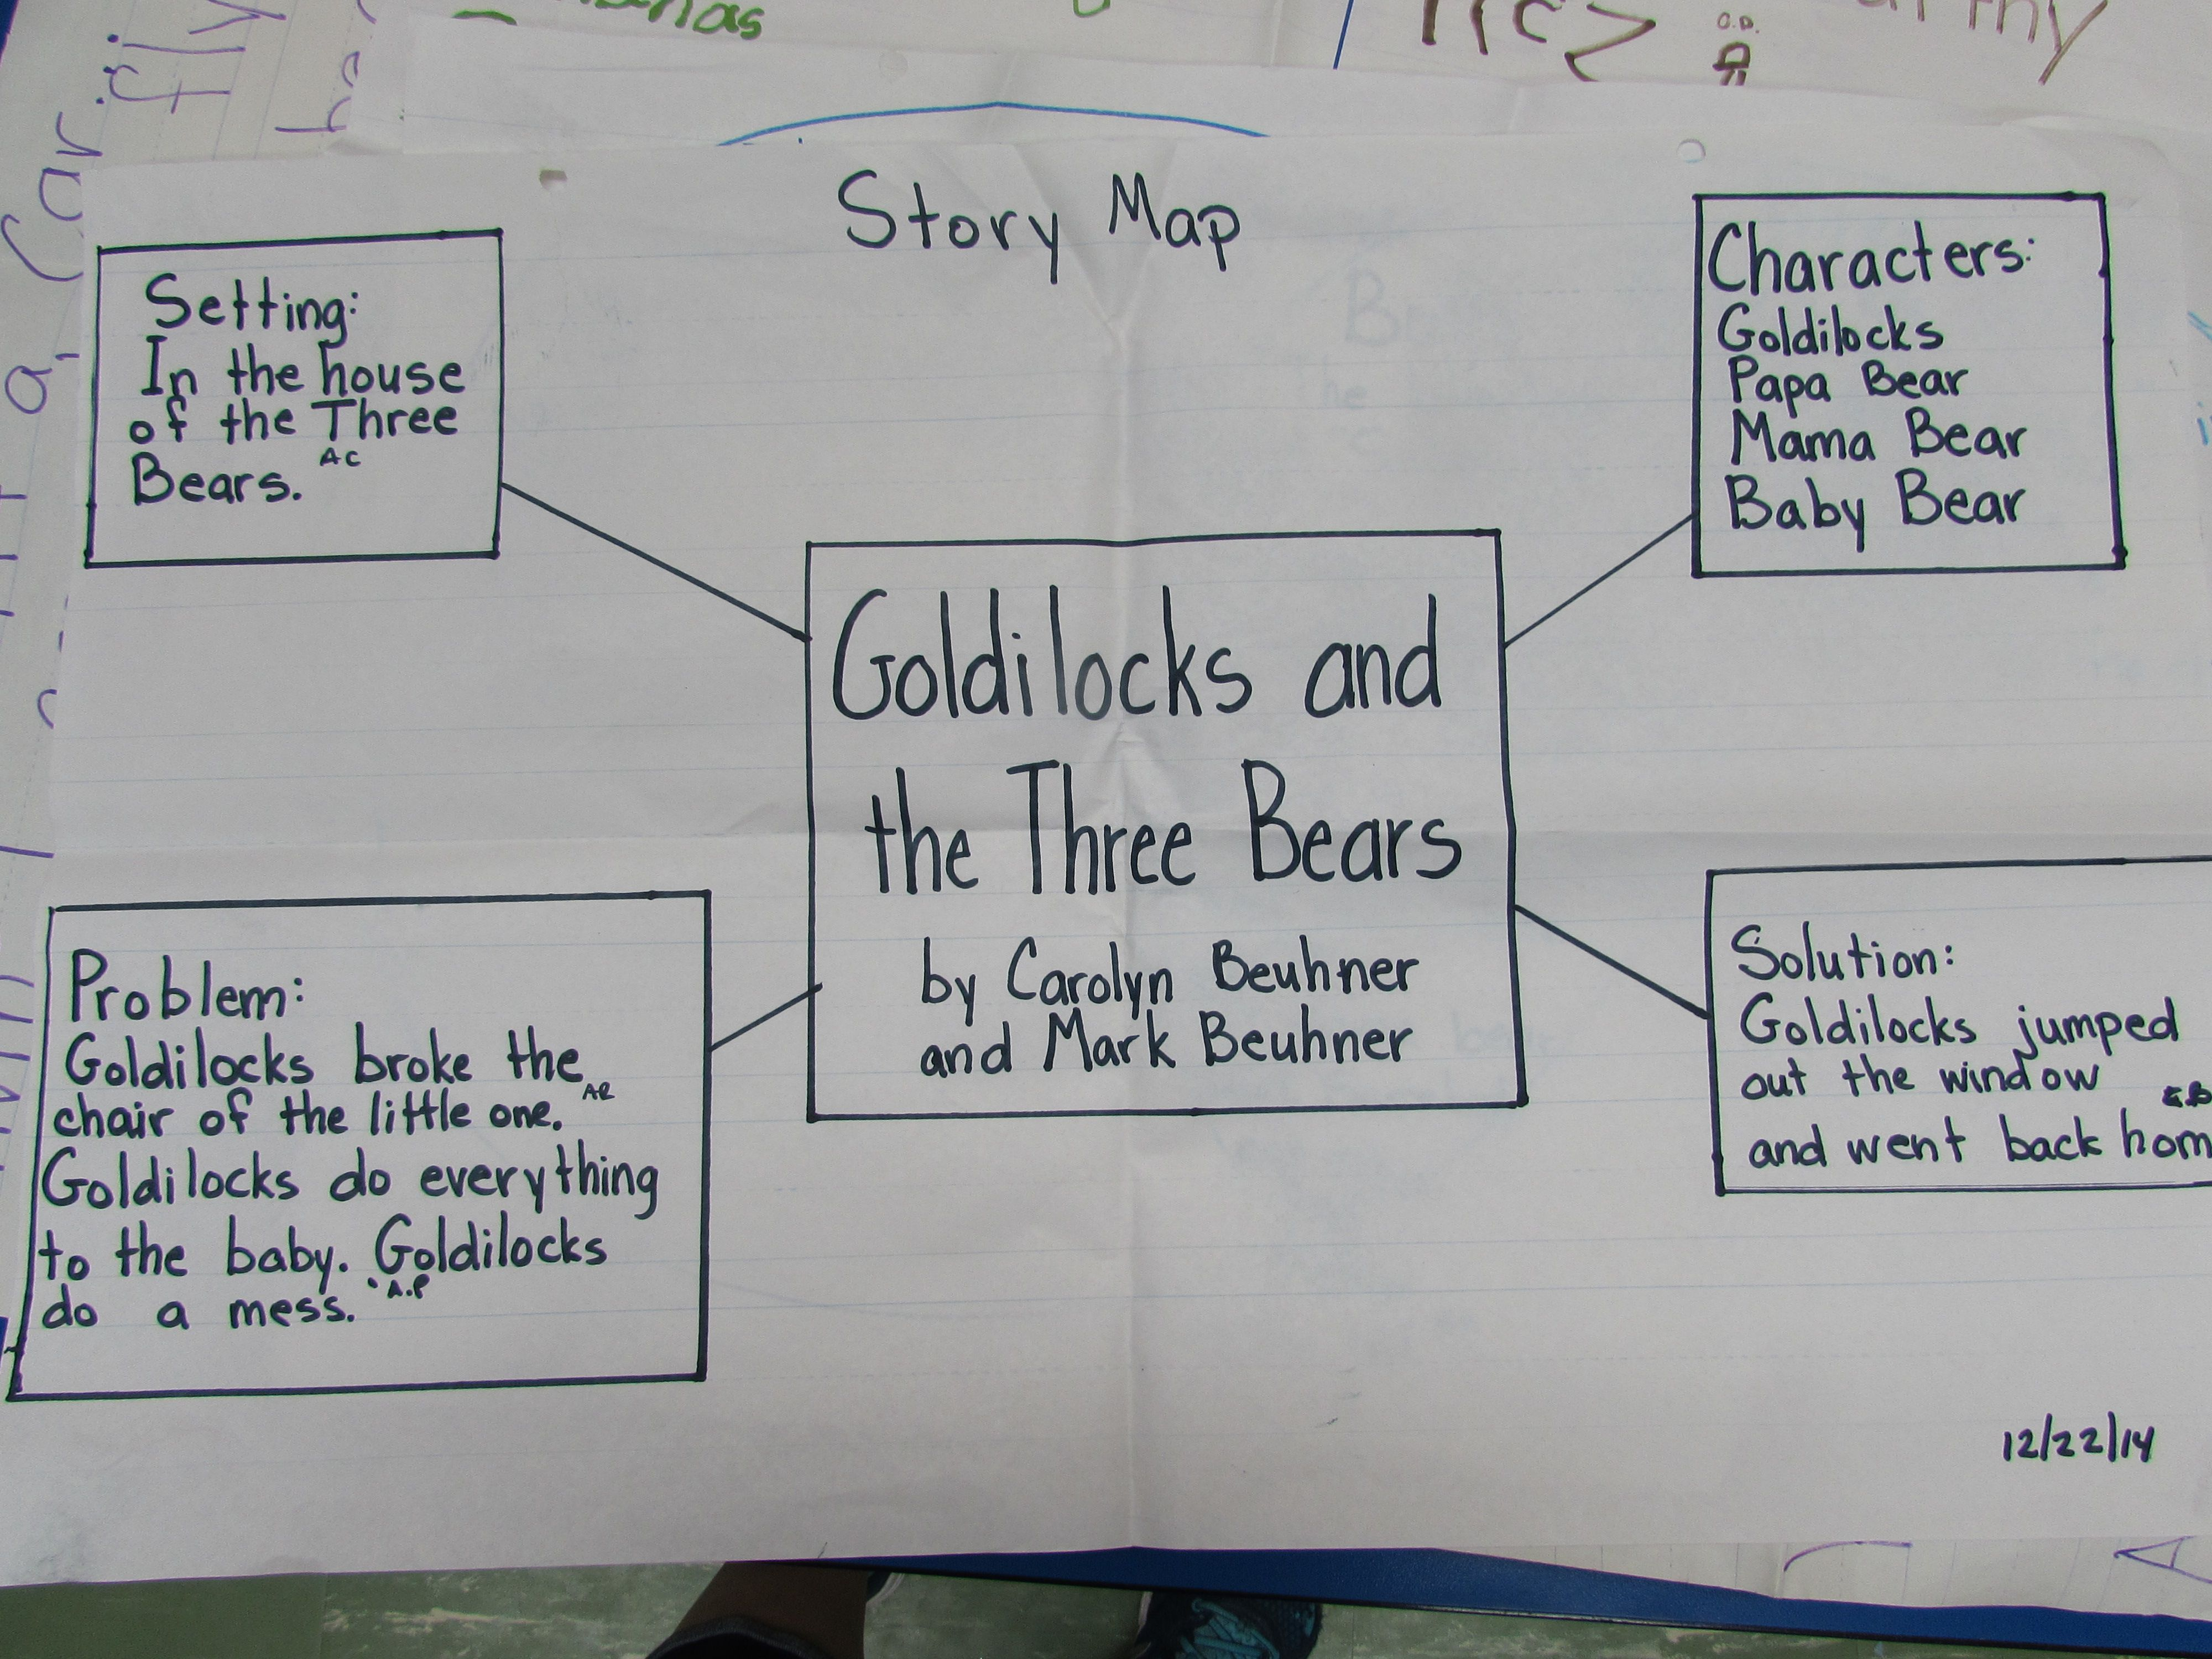 Image Result For Story Map Of Goldilocks And The Three